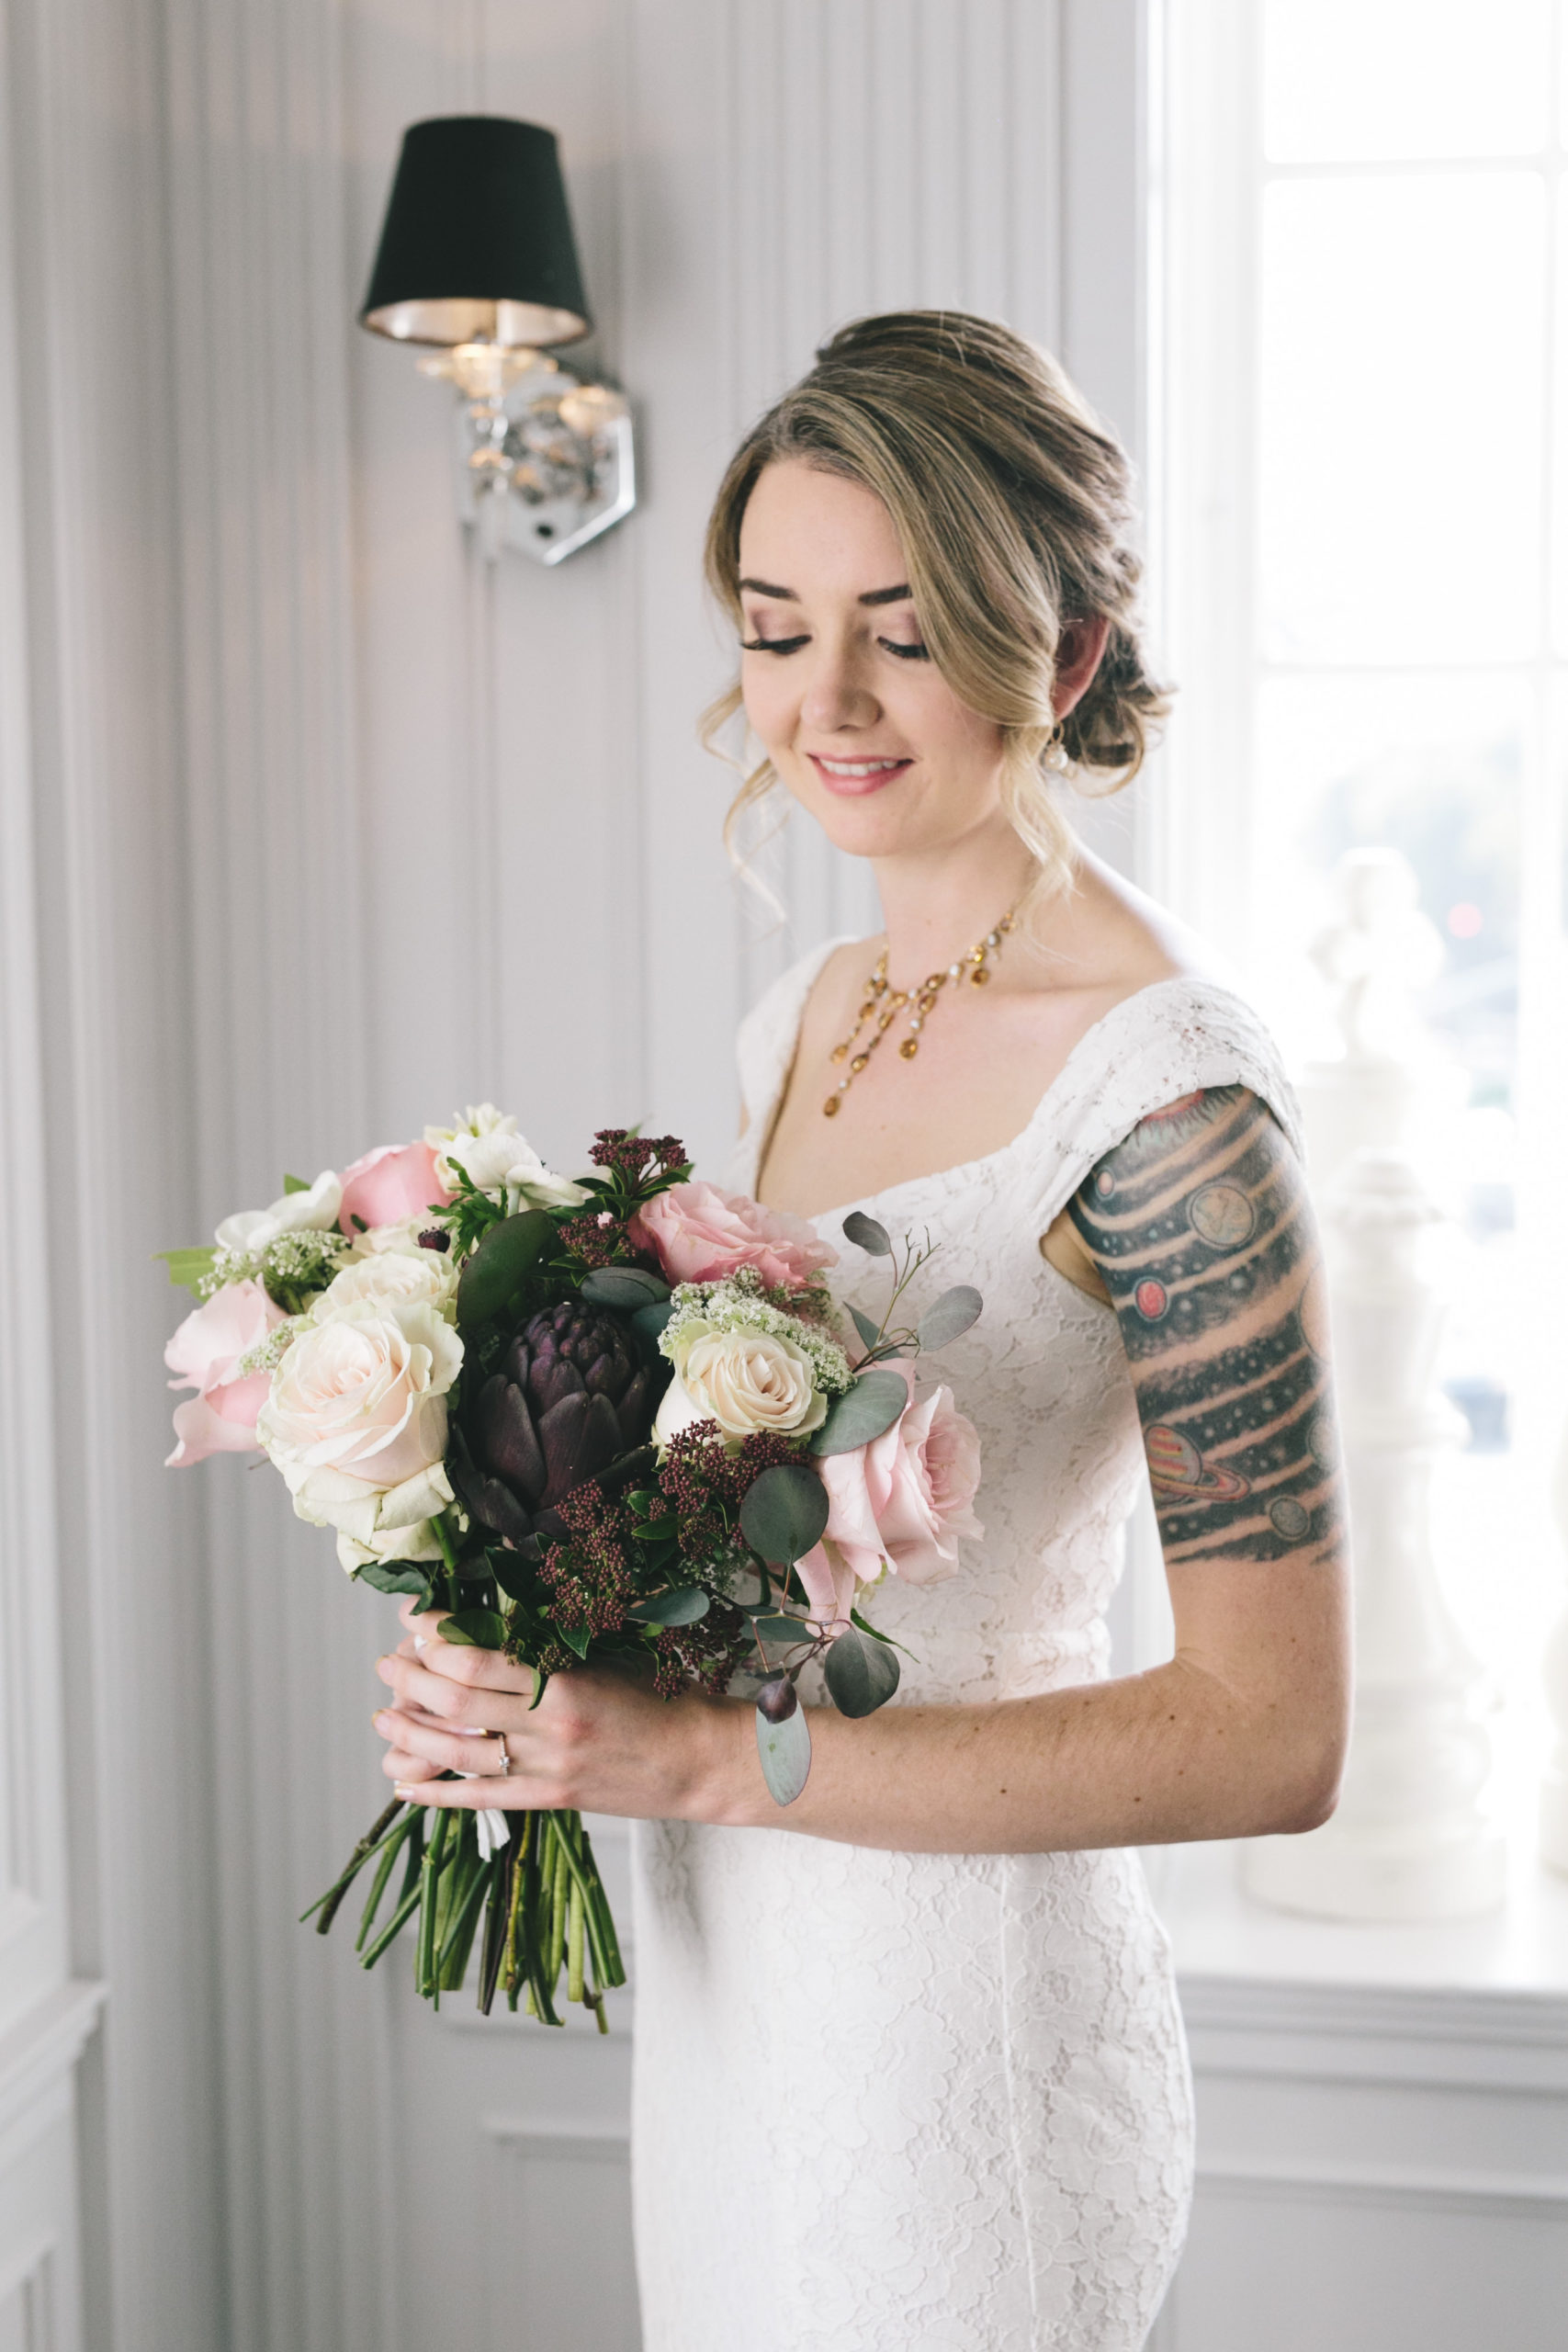 Bride with tattoo holding bridal bouquet